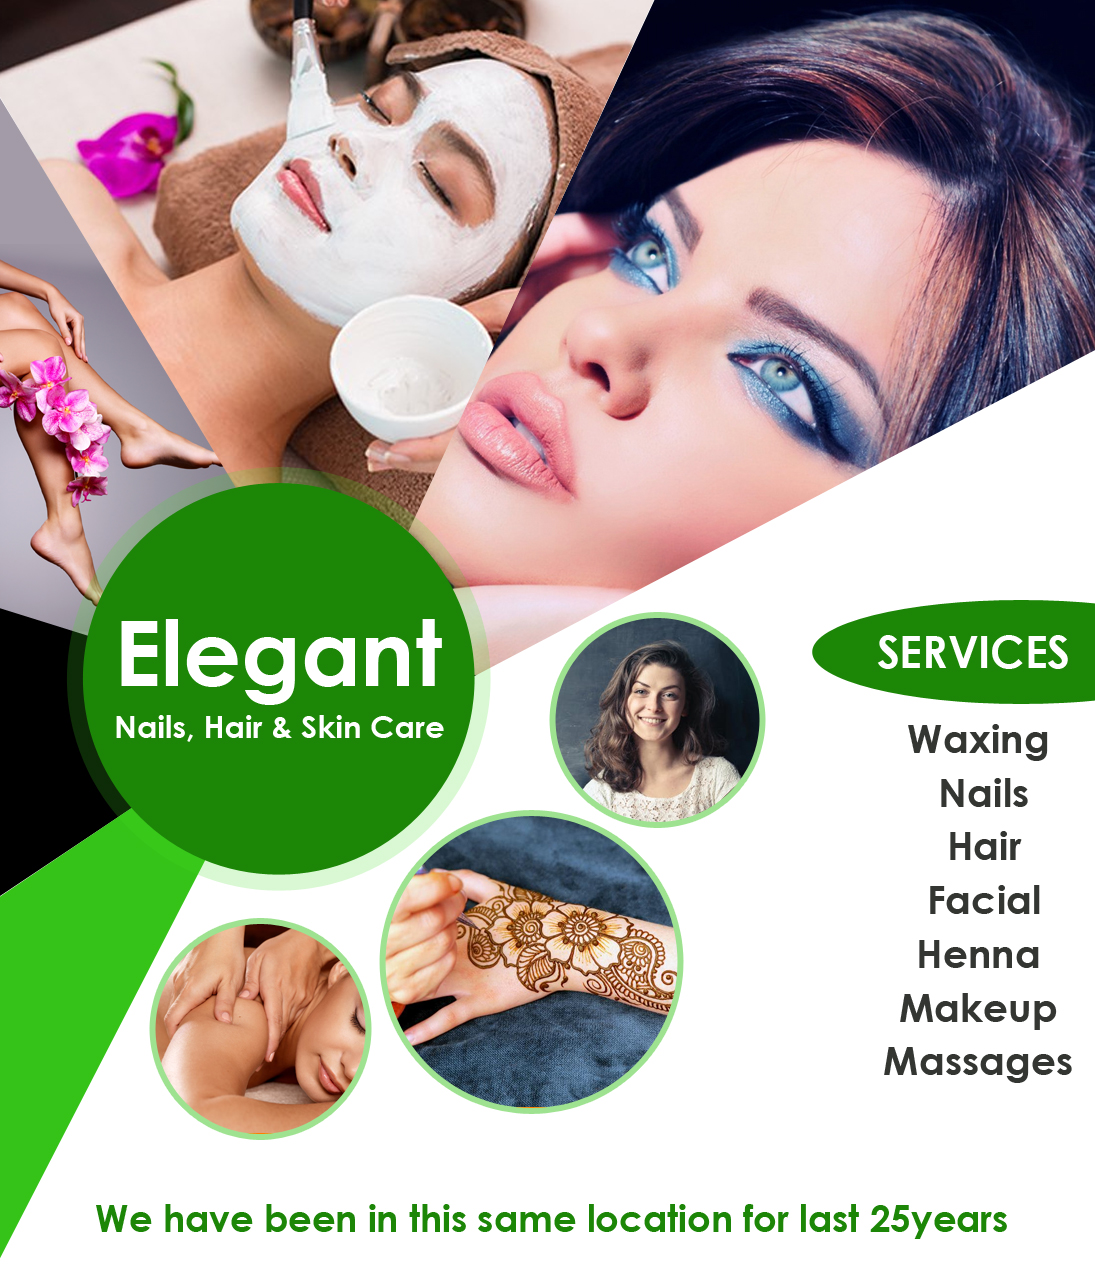 About Elegant Nails, Hair & Skin Care